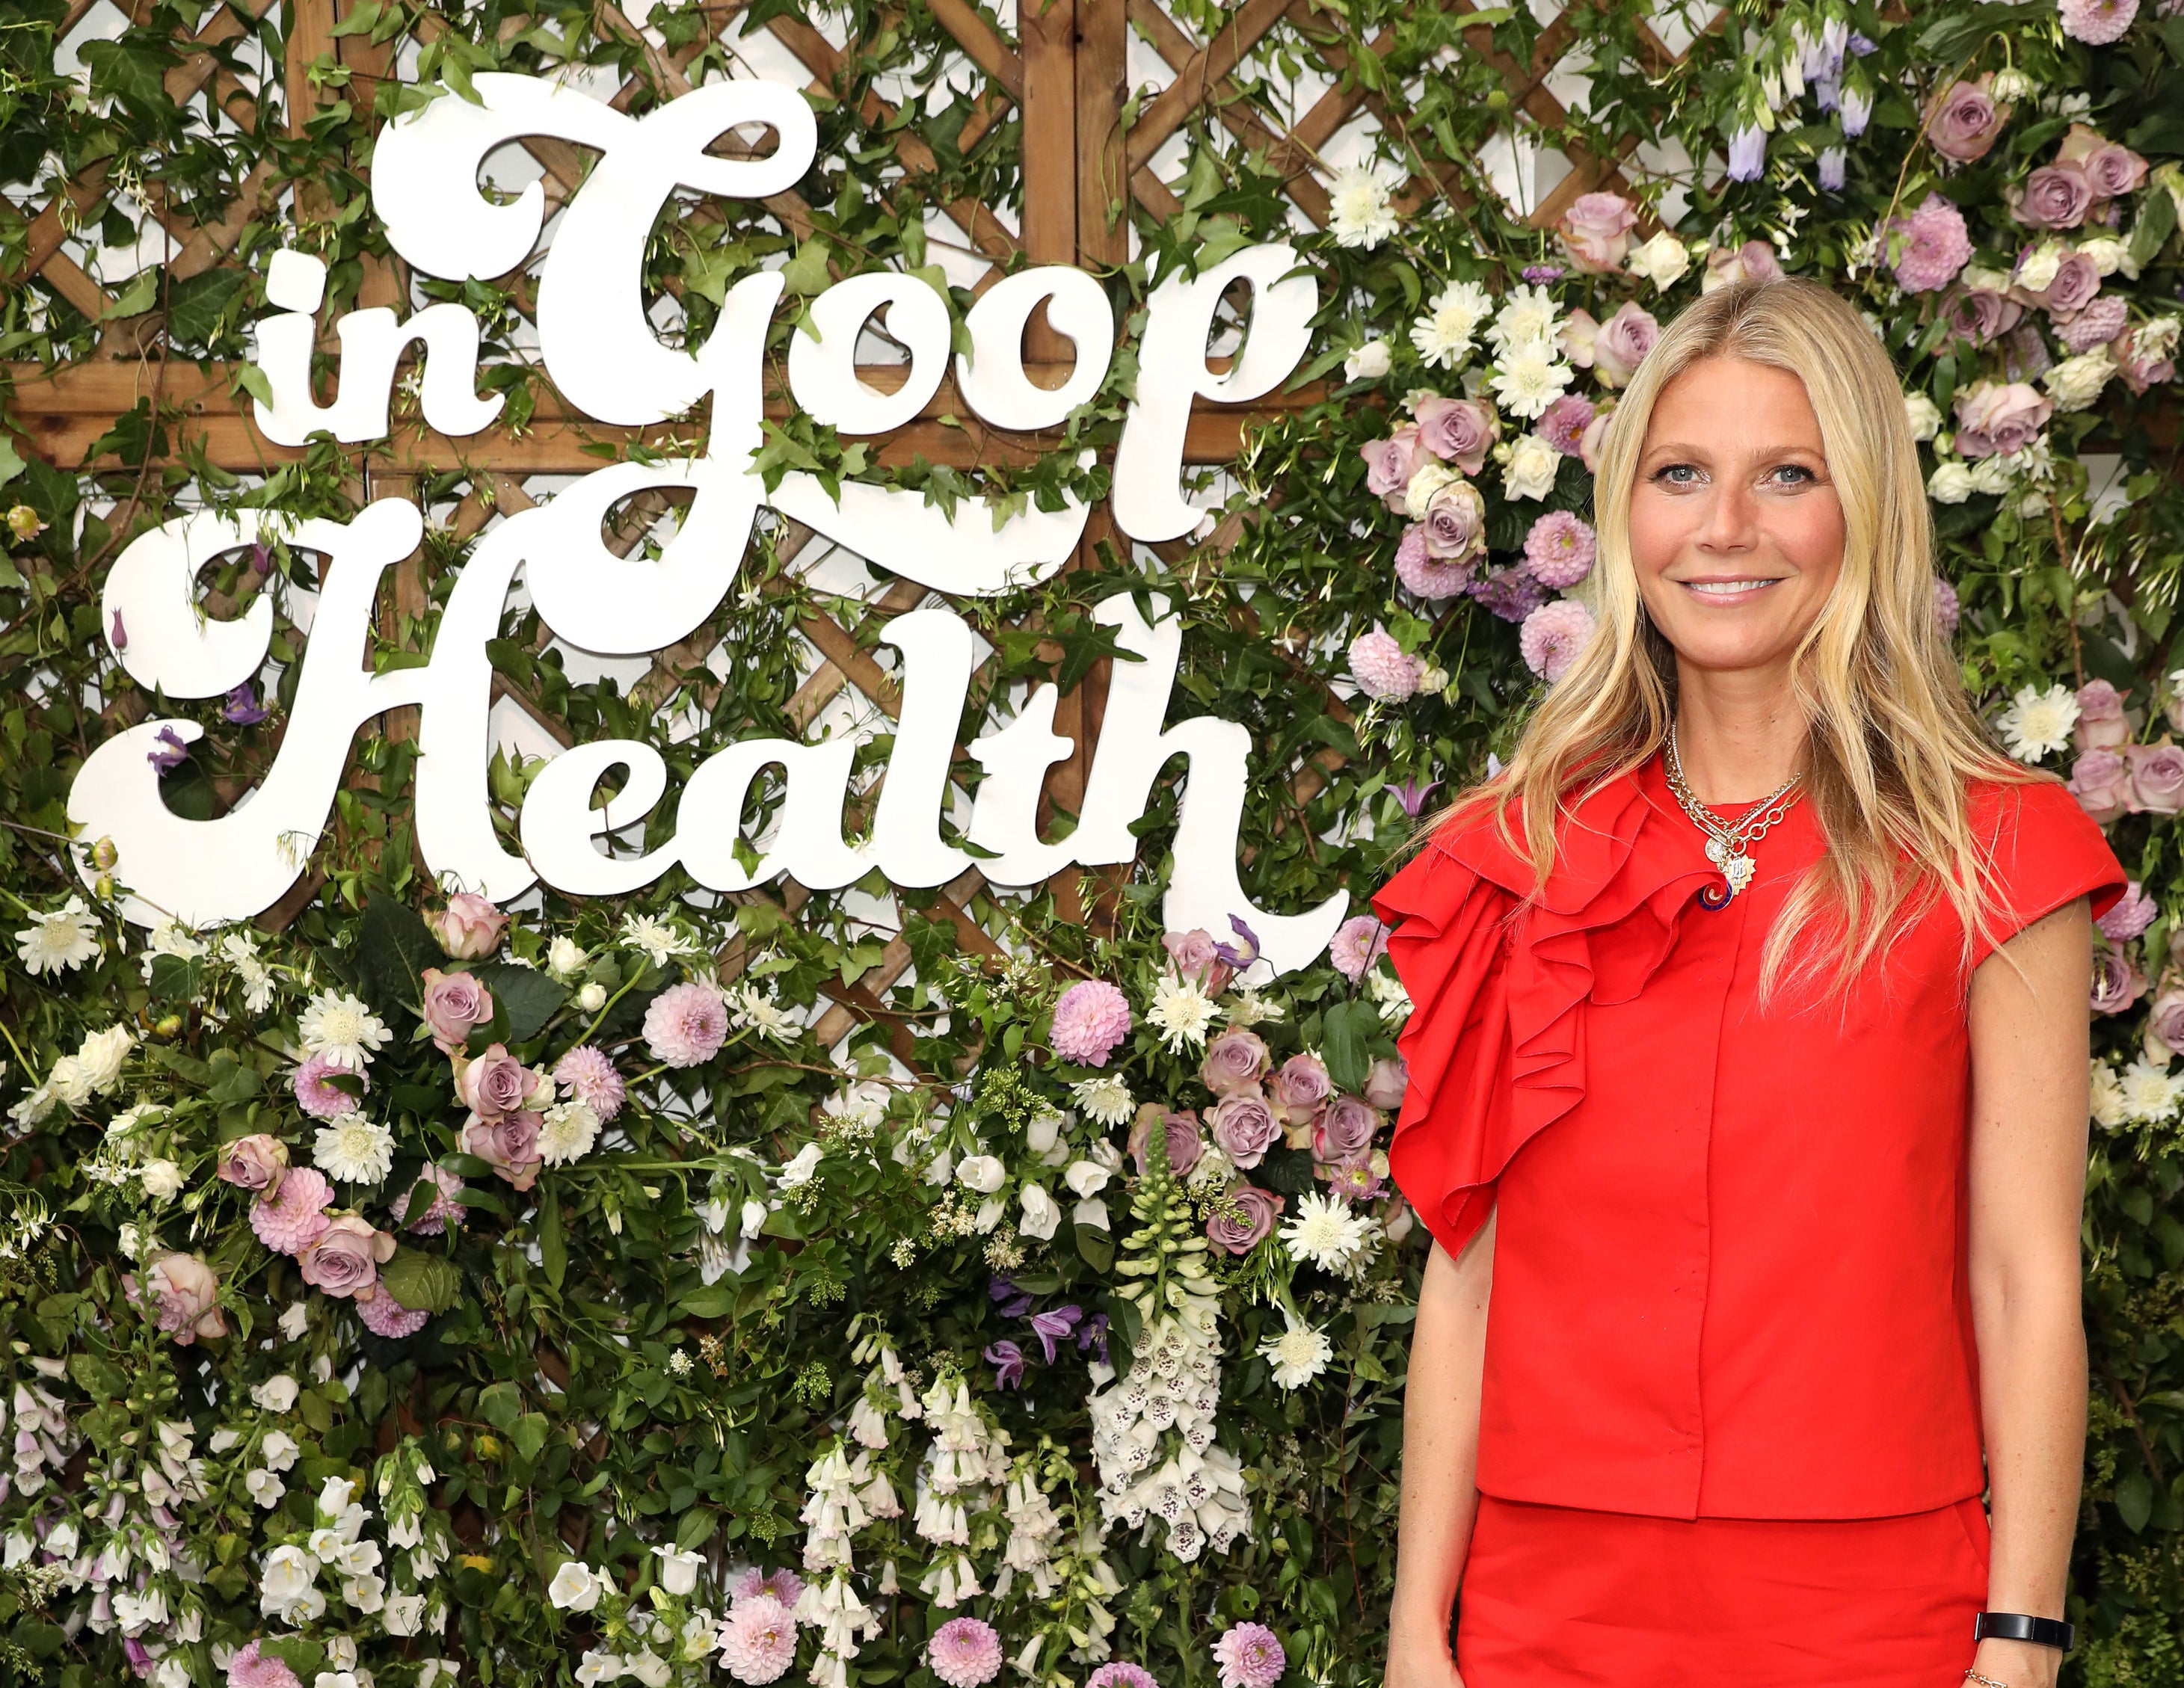 Gwyneth stands in front of a sign that says in goop health